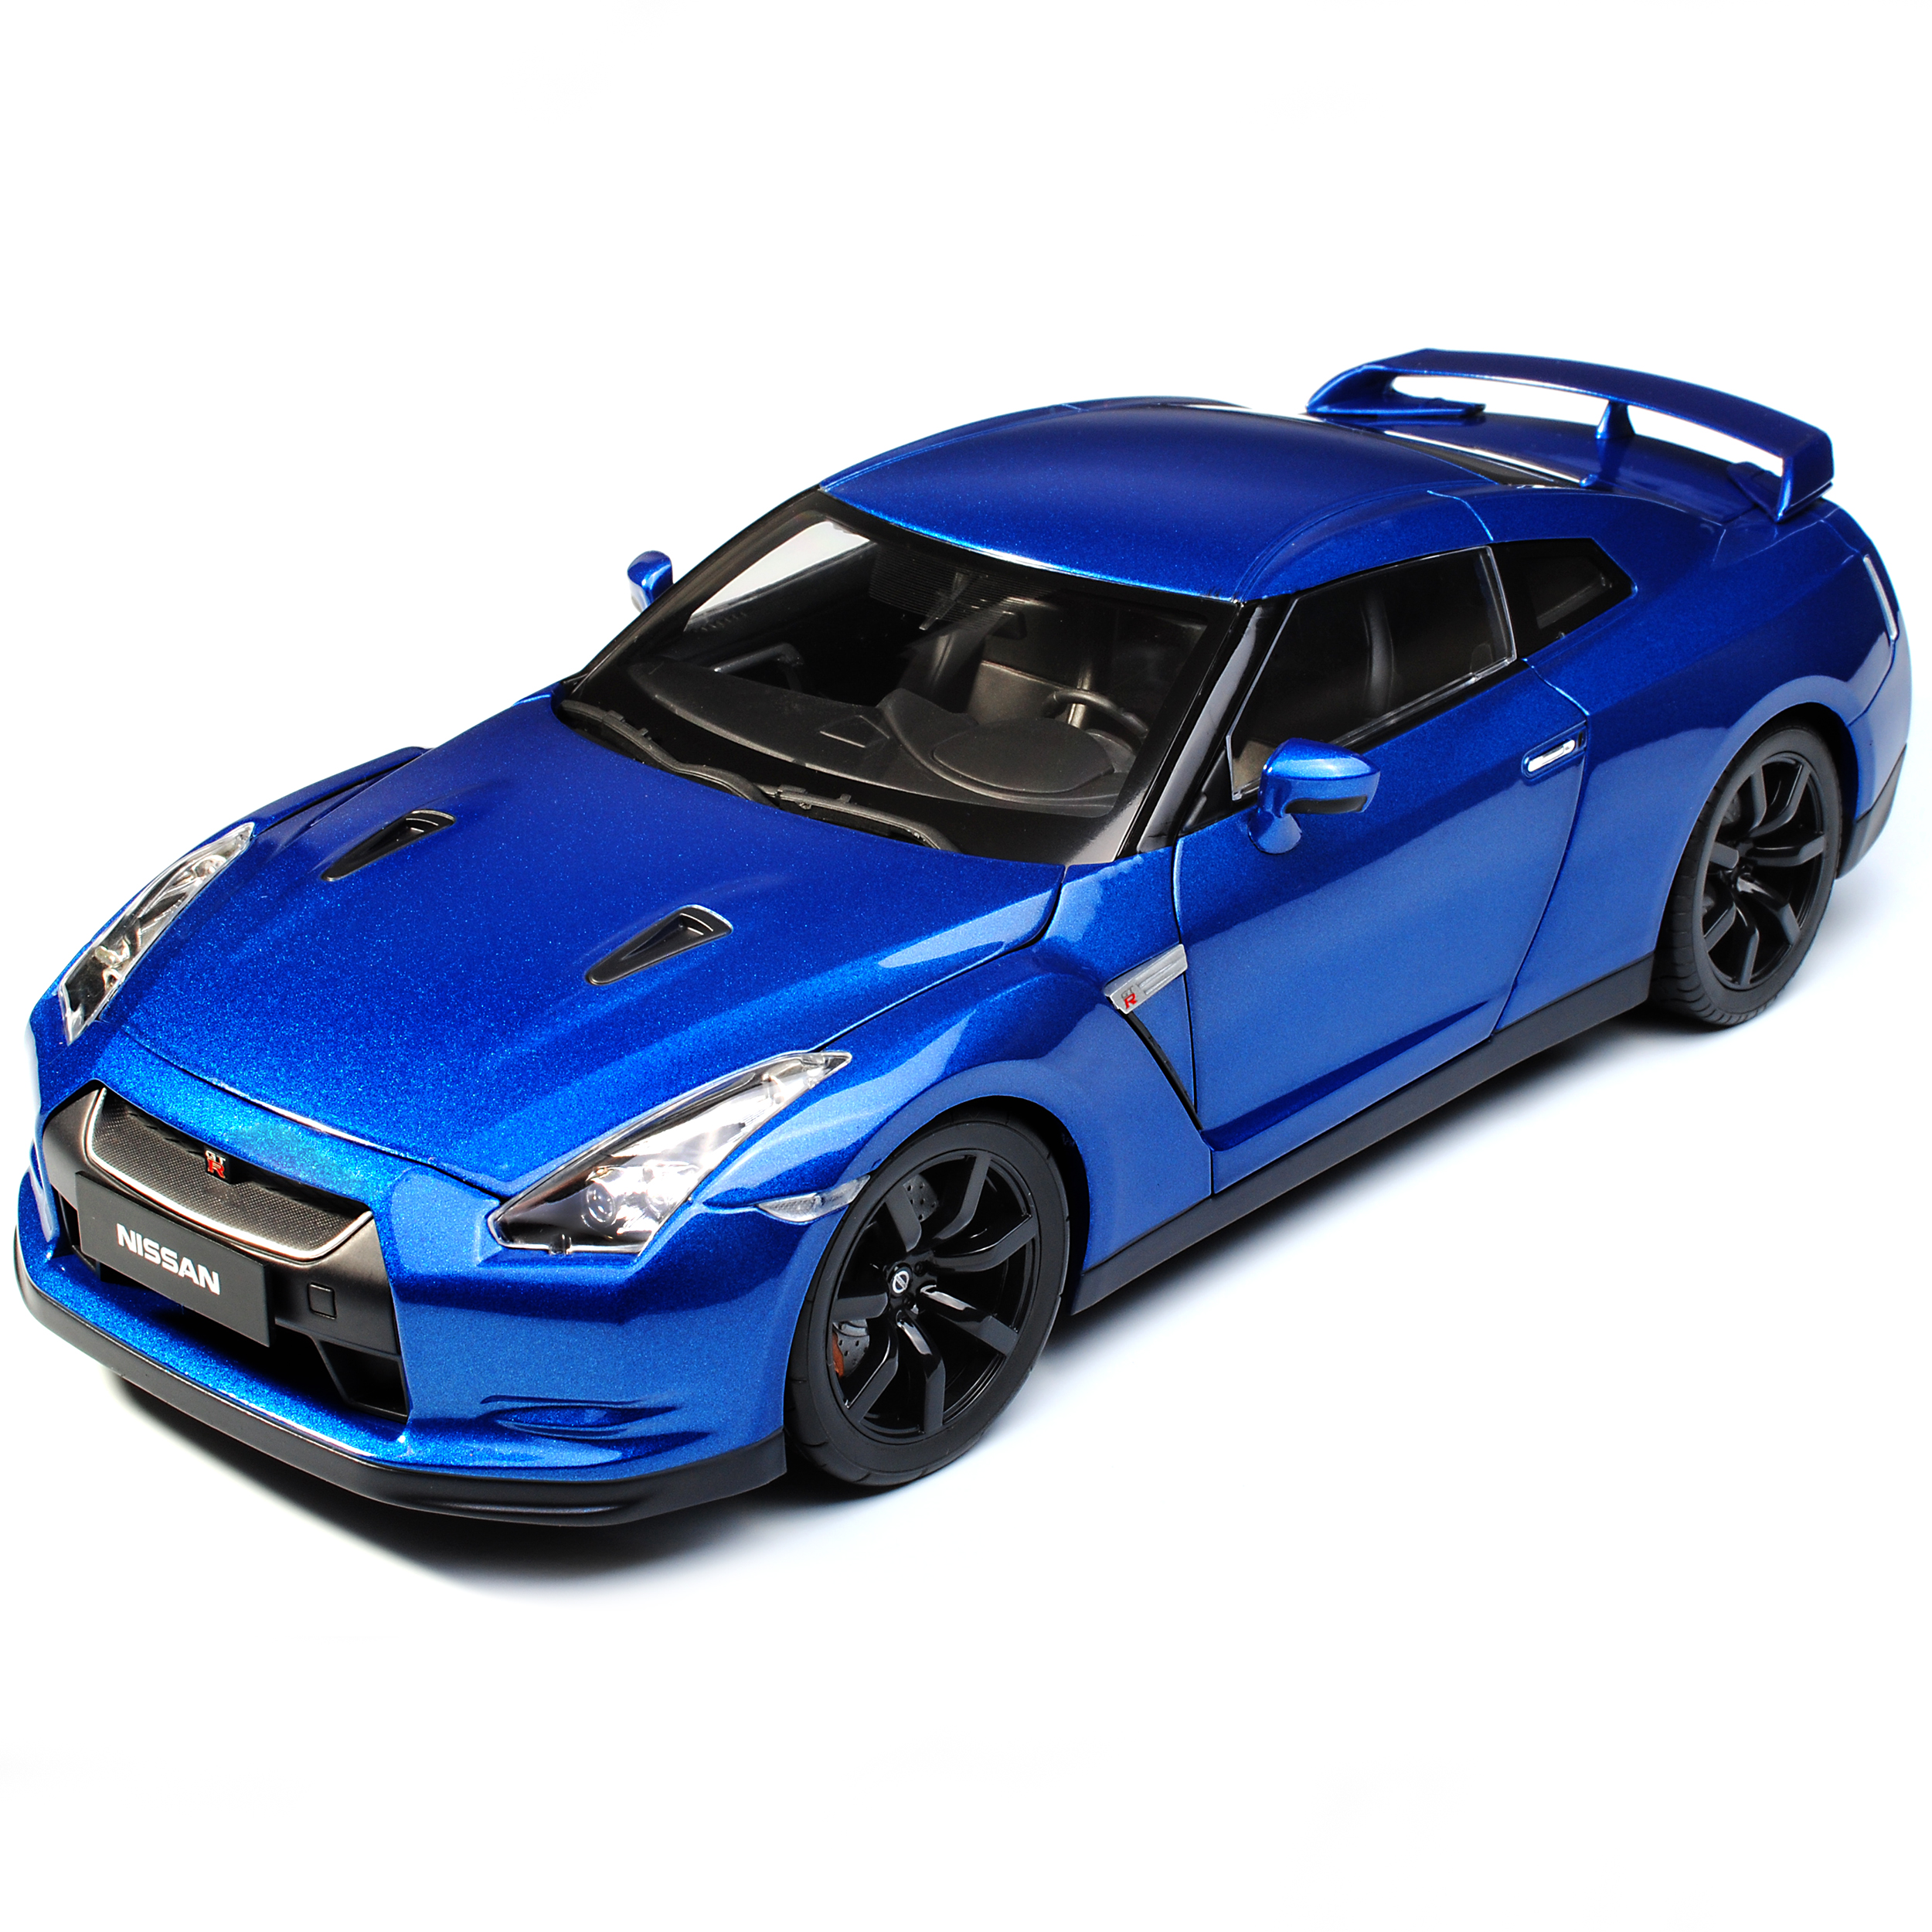 Nissan Skyline GT-R R35 Coupe Coupe Coupe blue Ab 2007 1 18 Norev Modell Auto mit oder ohn.. 1e63a1